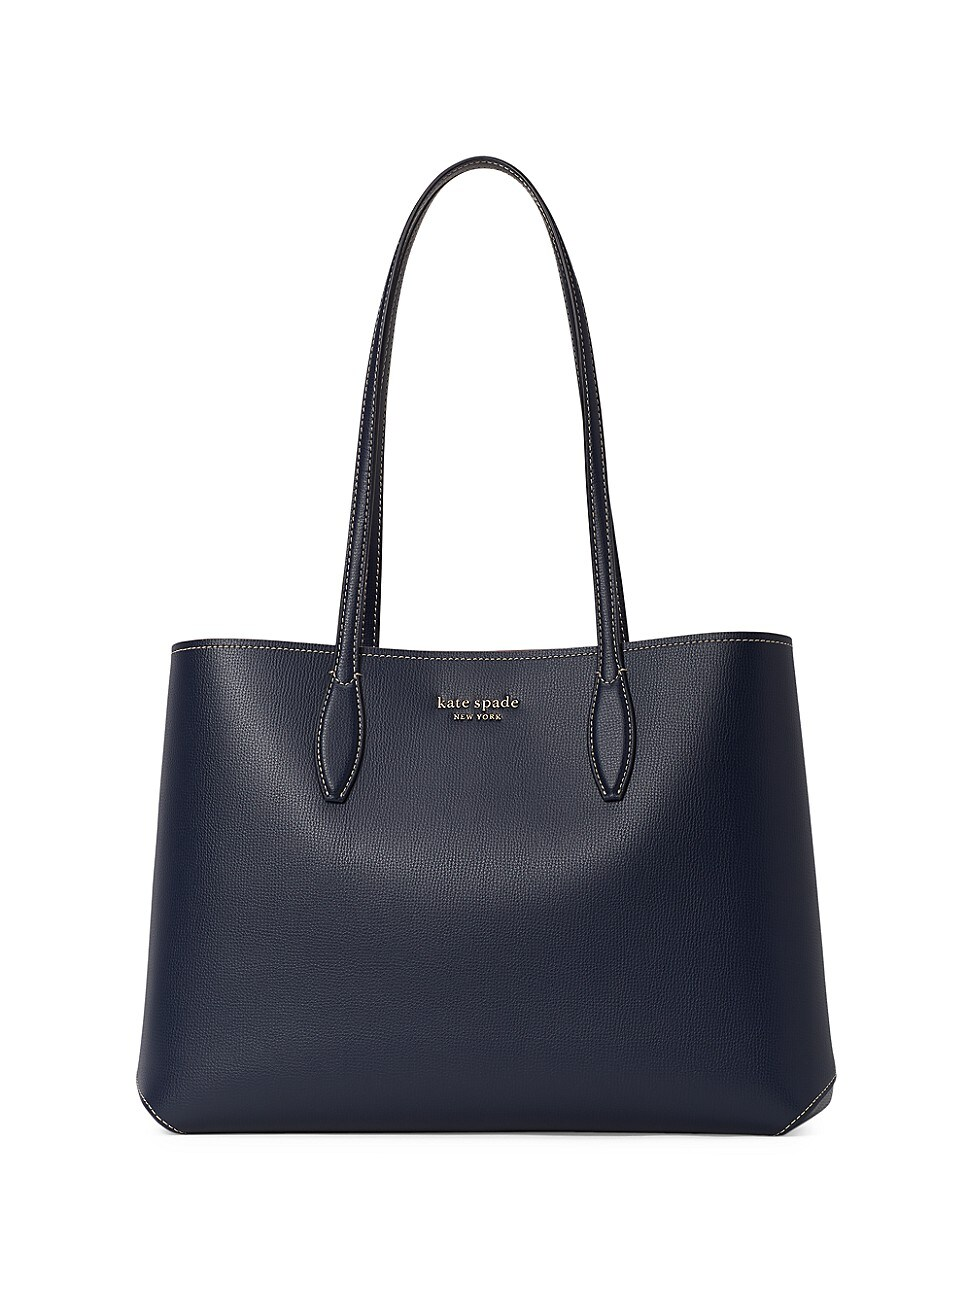 Kate Spade WOMEN'S LARGE ALL DAY LEATHER TOTE - BLUE